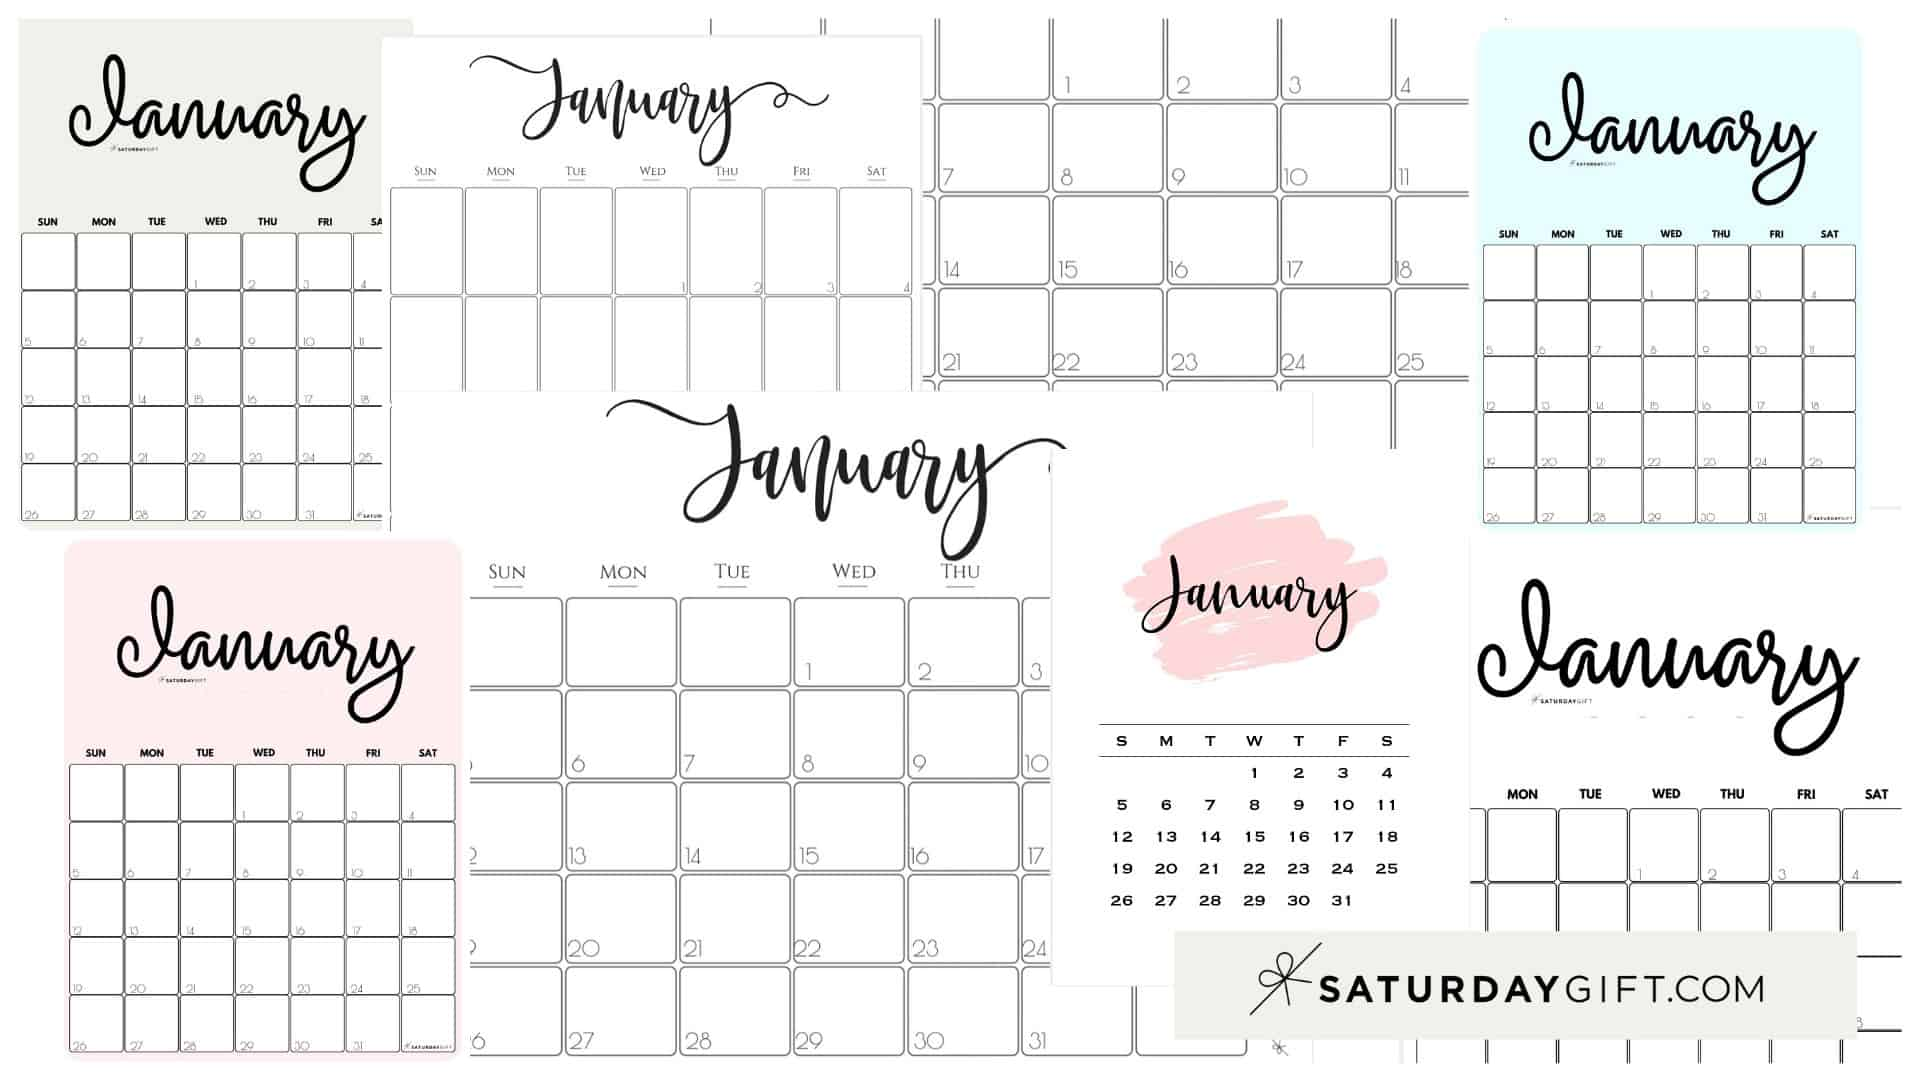 January 2021 Calendar Printable Saturday Gift - March 2021